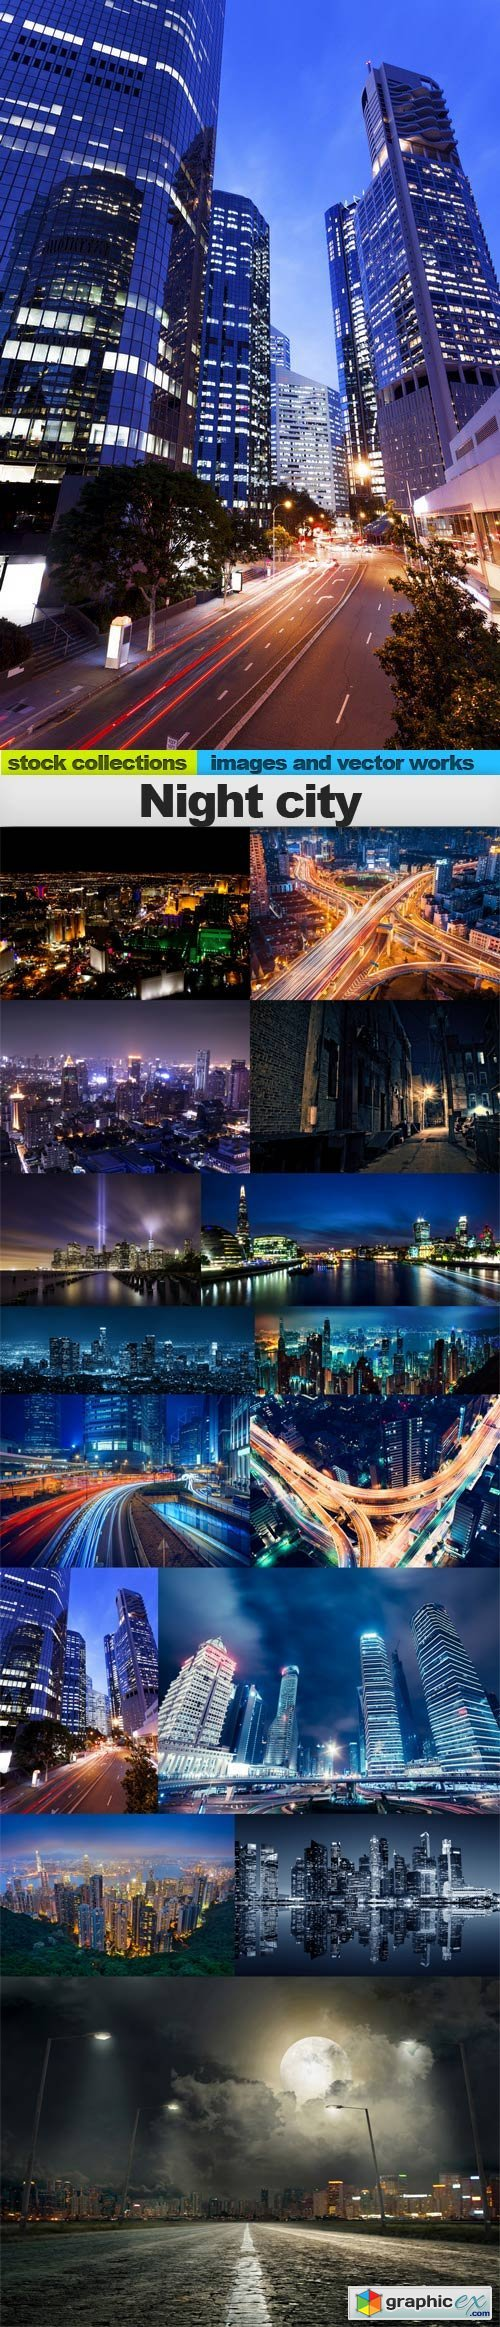 Night city, 15 x UHQ JPEG